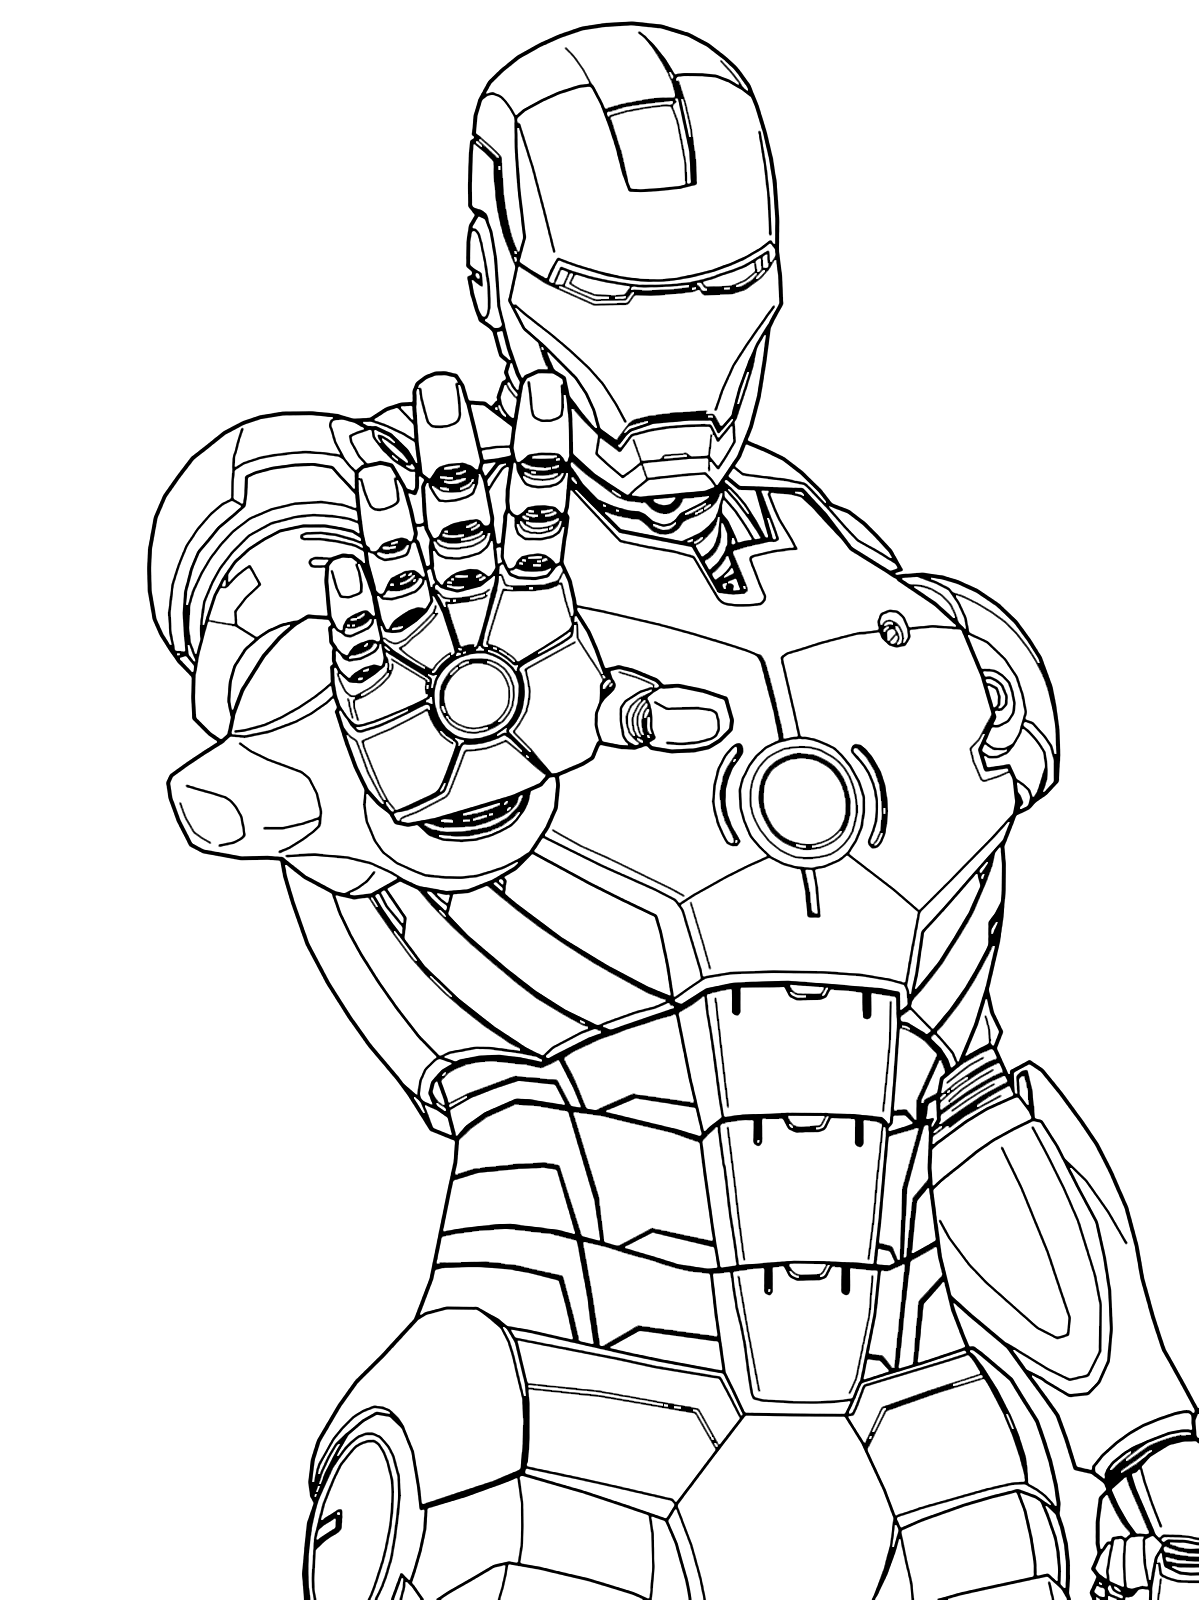 iron man coloring pictures free printable iron man coloring pages for kids best pictures man iron coloring